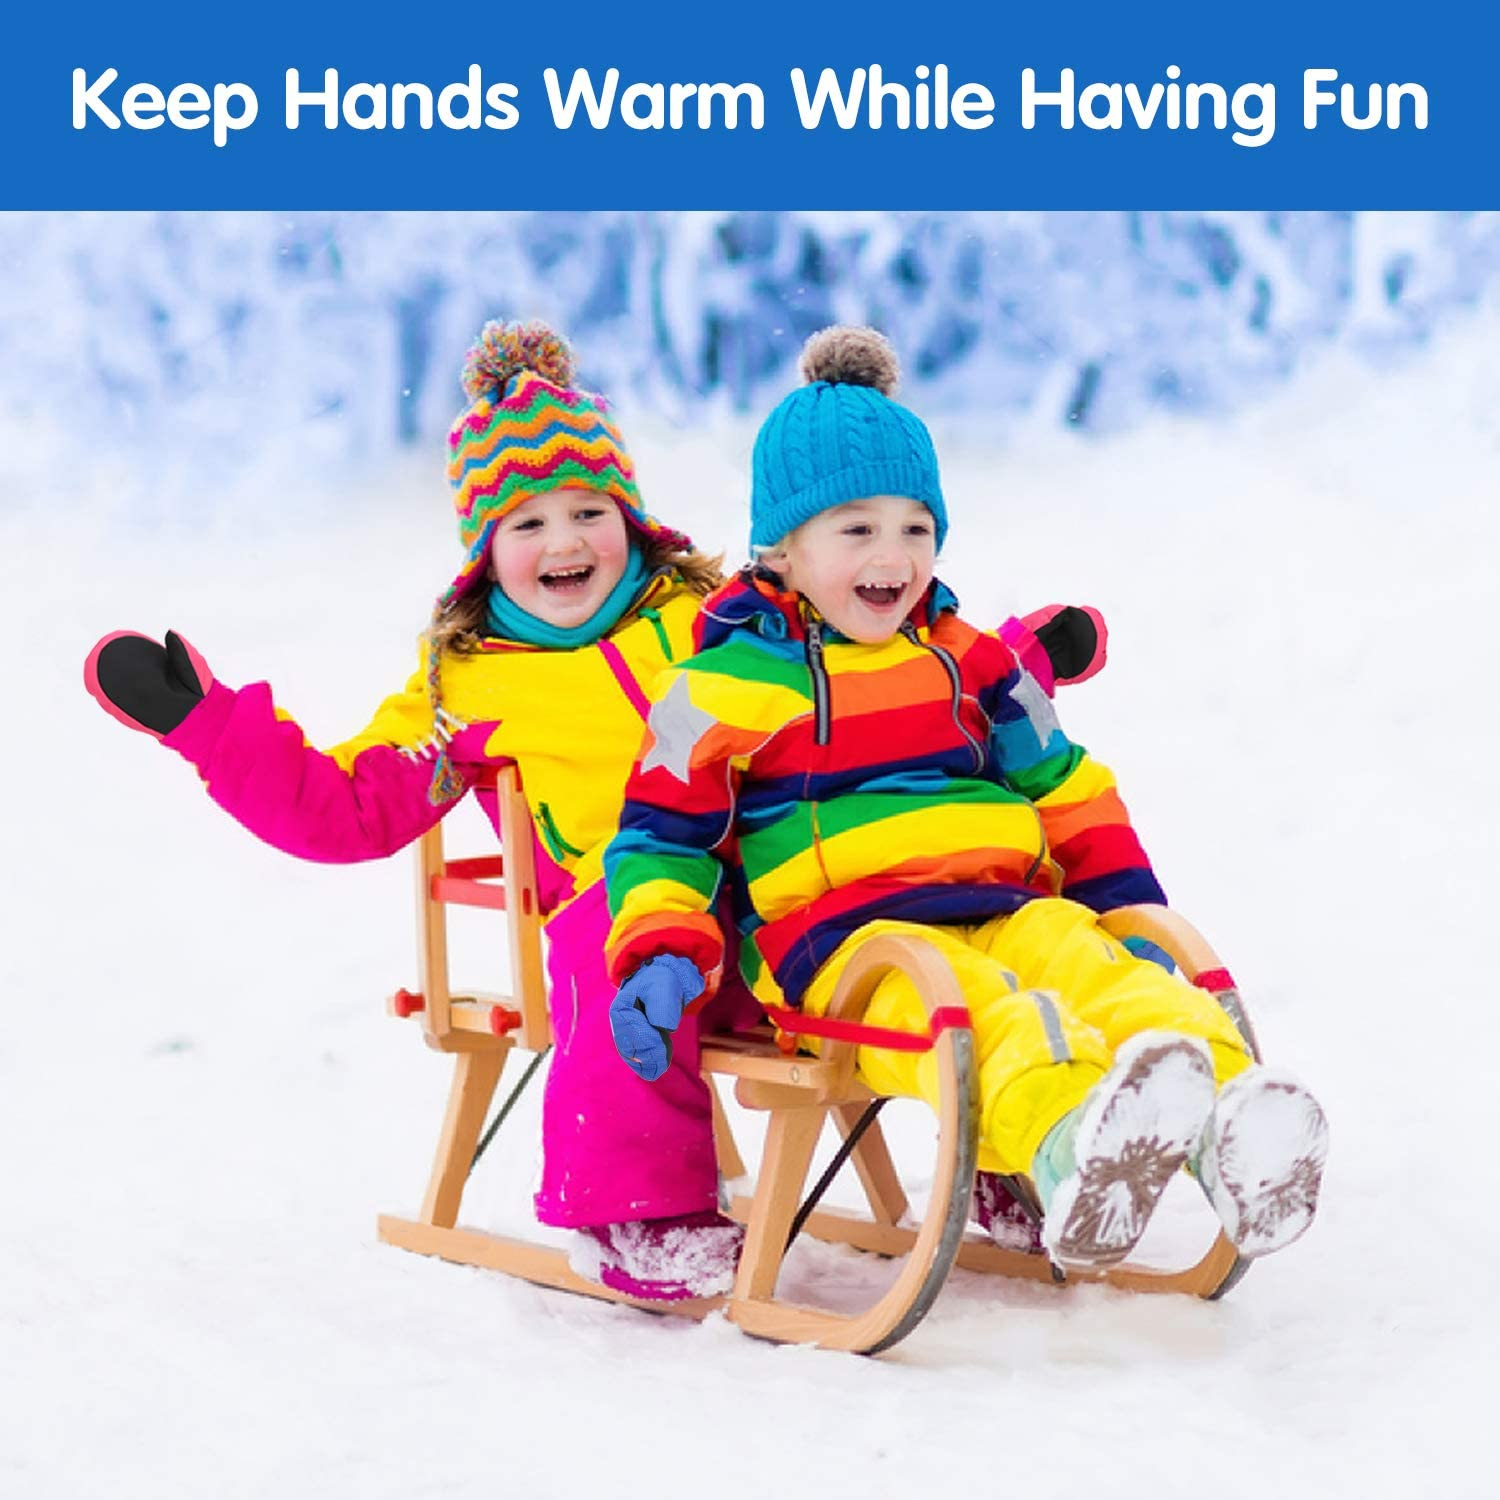 Outdoor Activities for Boys Girls Toddlers Cycling Winter Windproof Mittens Waterproof Cold Weather Warm Thermal Gloves for Skiing Snowboarding Aged 1-8 MoKo Kids Ski Gloves